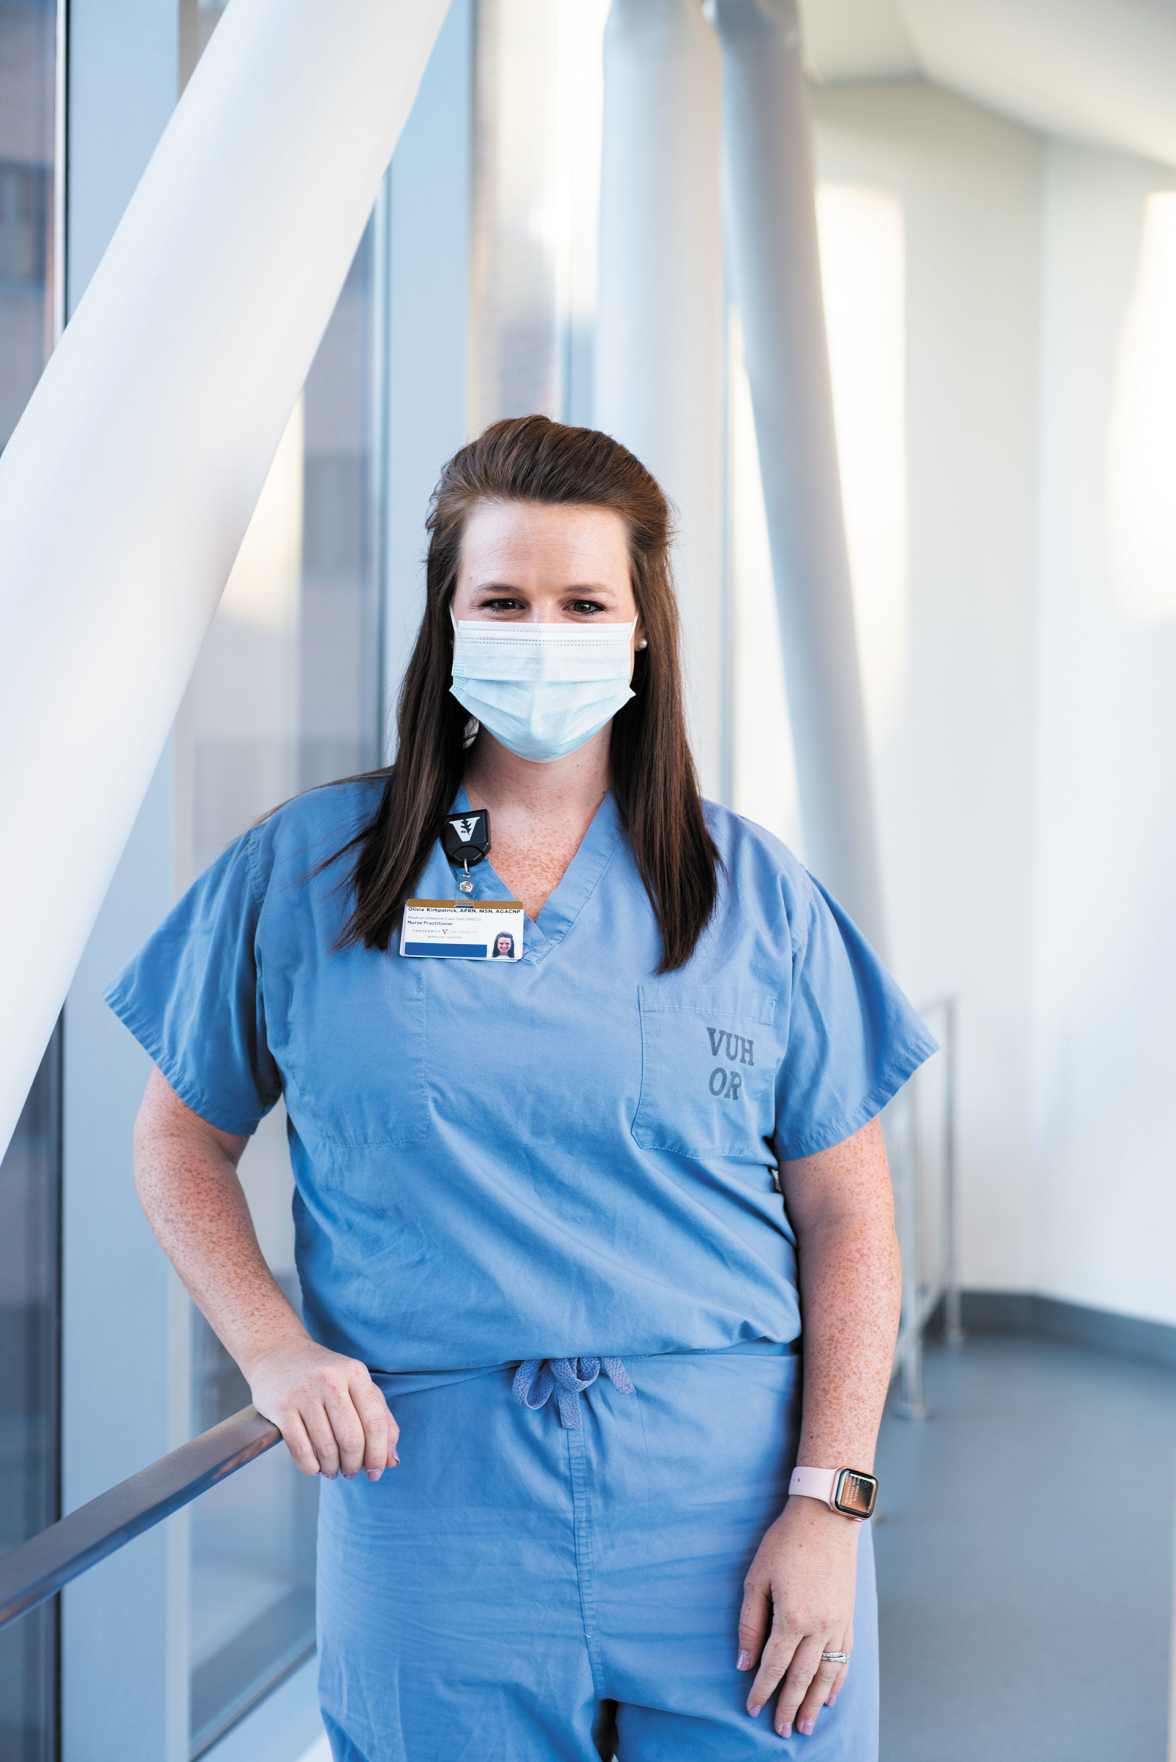 Nashvillians of the Year: Health Care Workers